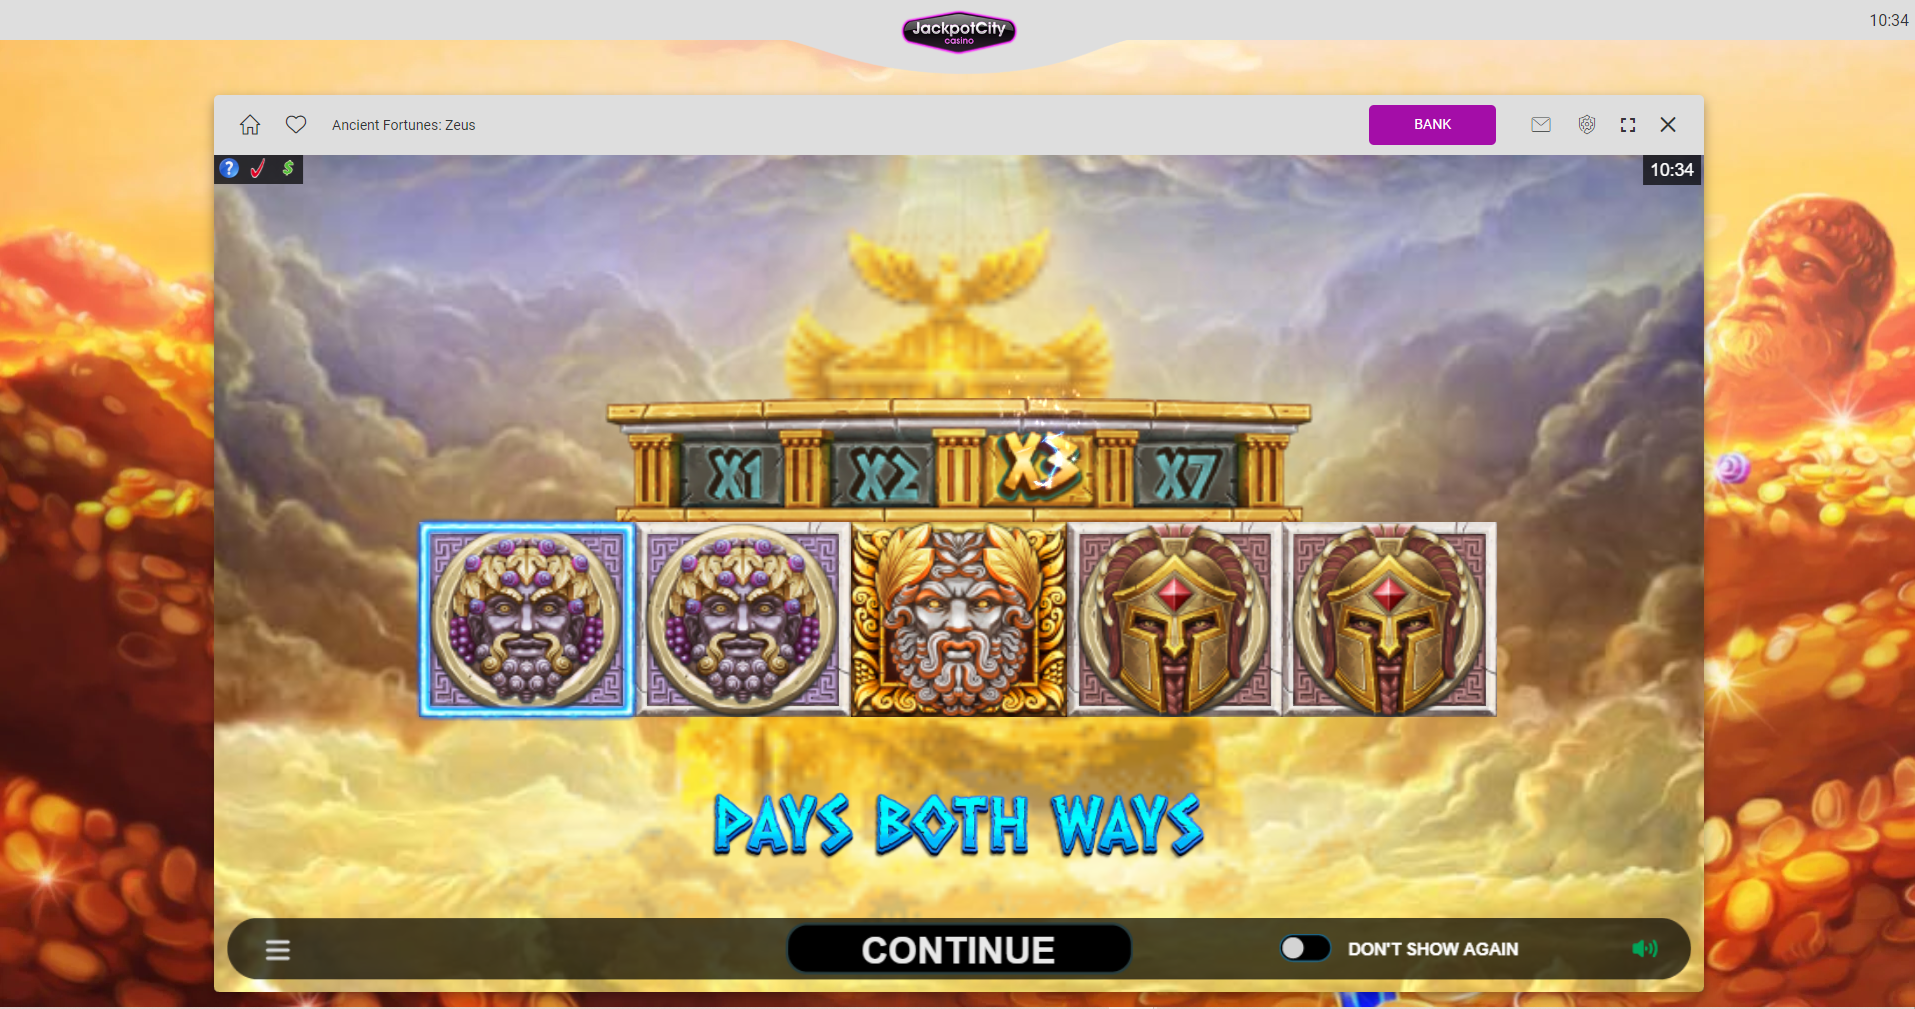 jackpot city slots - ancients fortunes zeus pays both ways gods